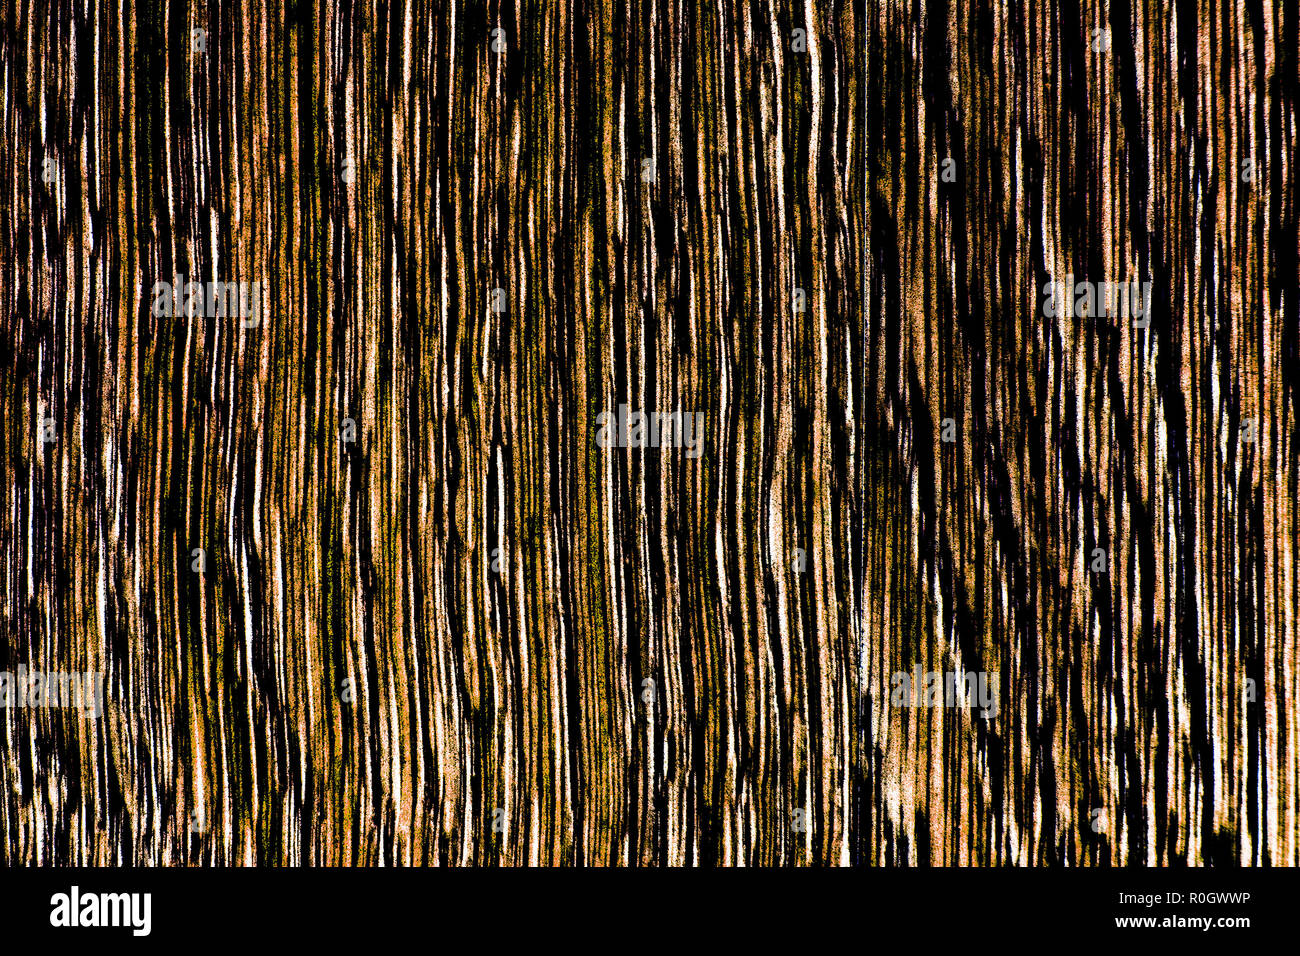 High contrast wooden texture in brown tones, lengthwise cut vertically oriented, HDR toning - Stock Image